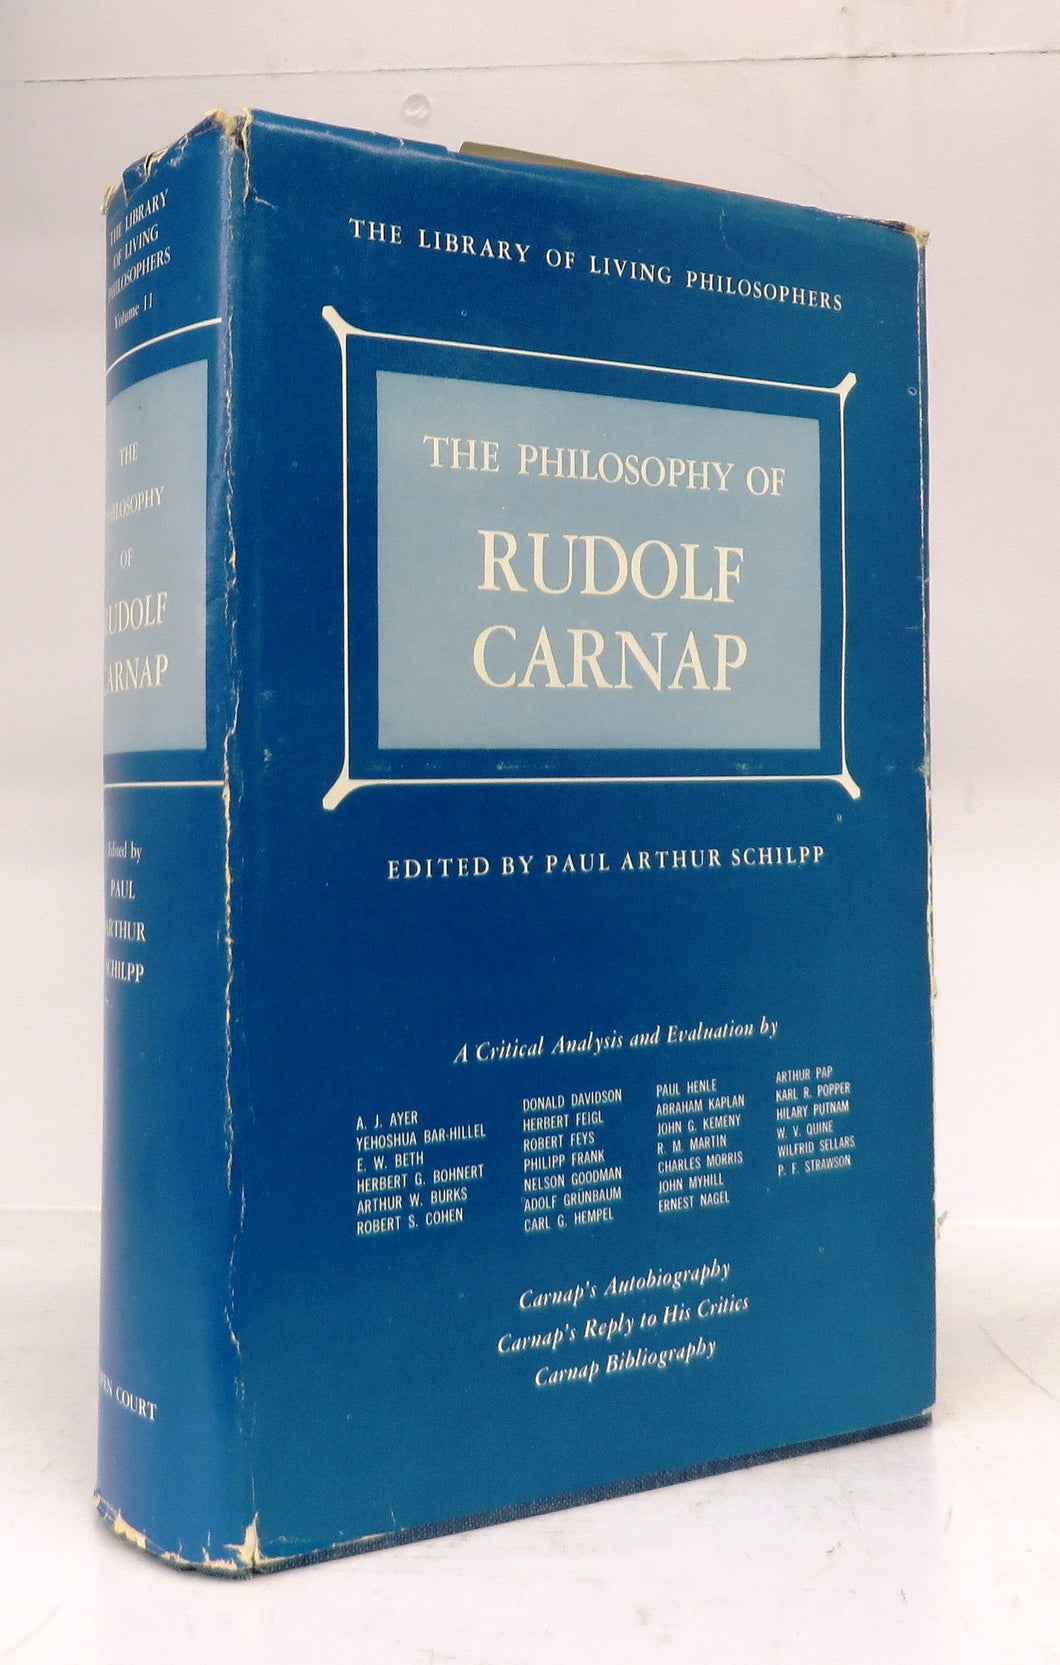 The Philosophy of Rudolf Carnap